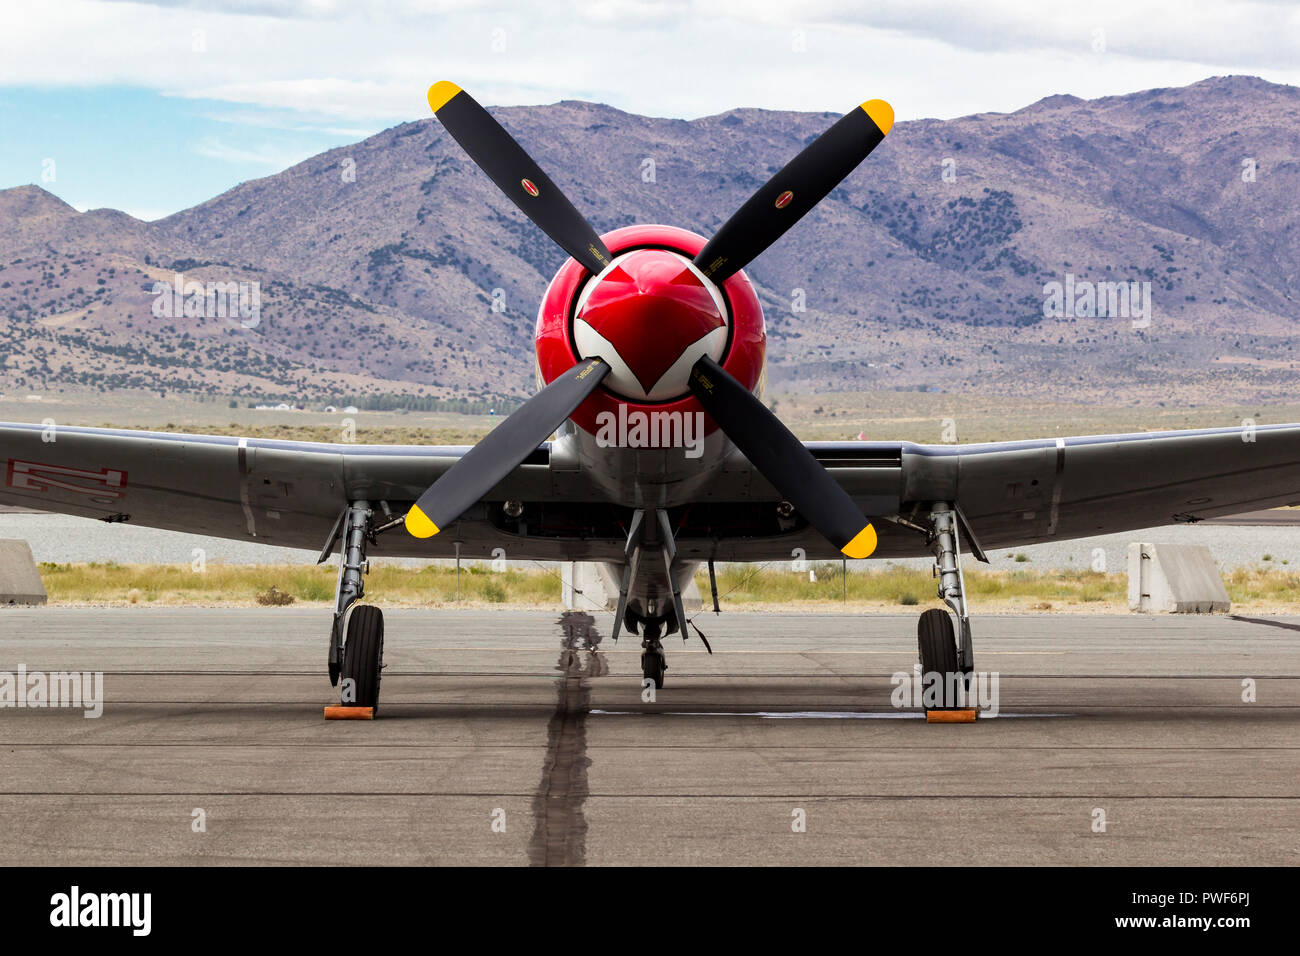 Hawker Sea Fury 'Sawbones' flown by Space Shuttle Astronaut Curt Brown during the 2018 National Championship Air Races sits on the ramp. - Stock Image